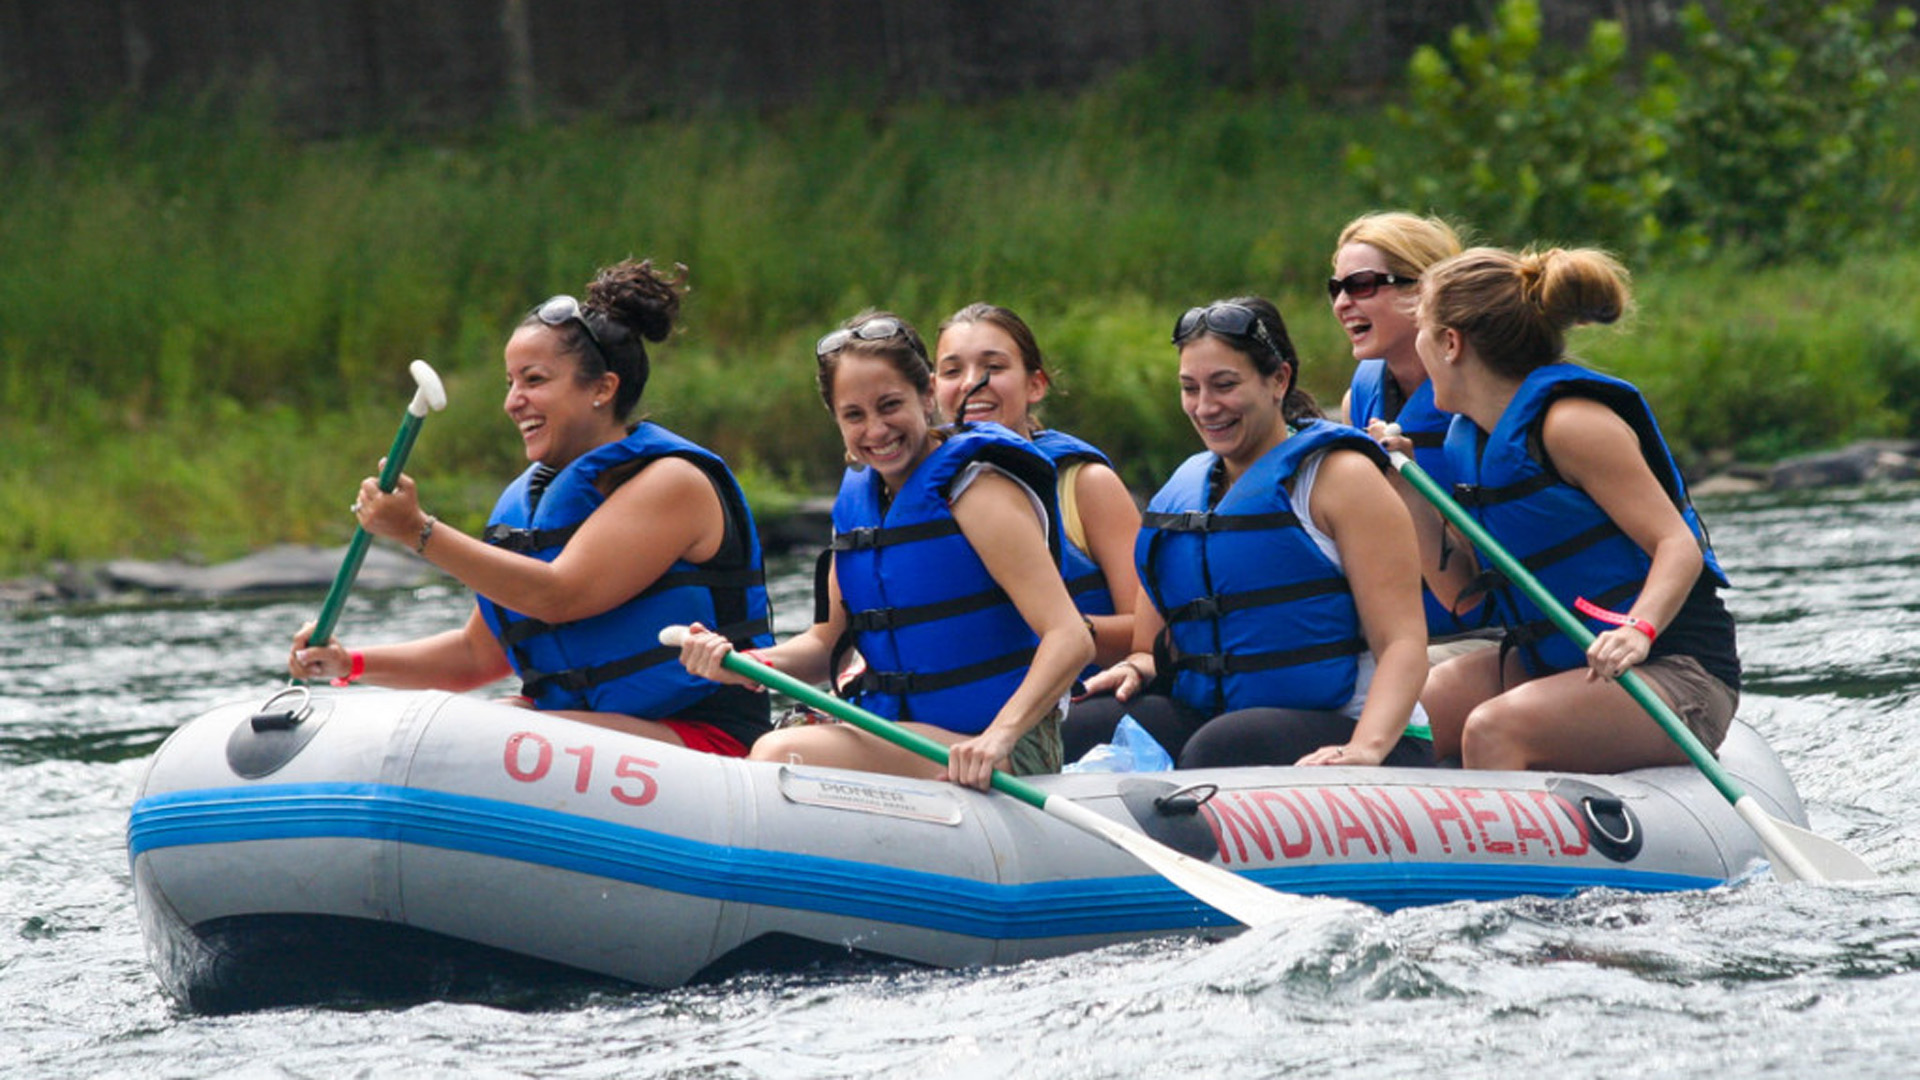 girlfriends enjoy a laugh on whitewater Indian Head Canoeing Rafting Kayaking Tubing Delaware River